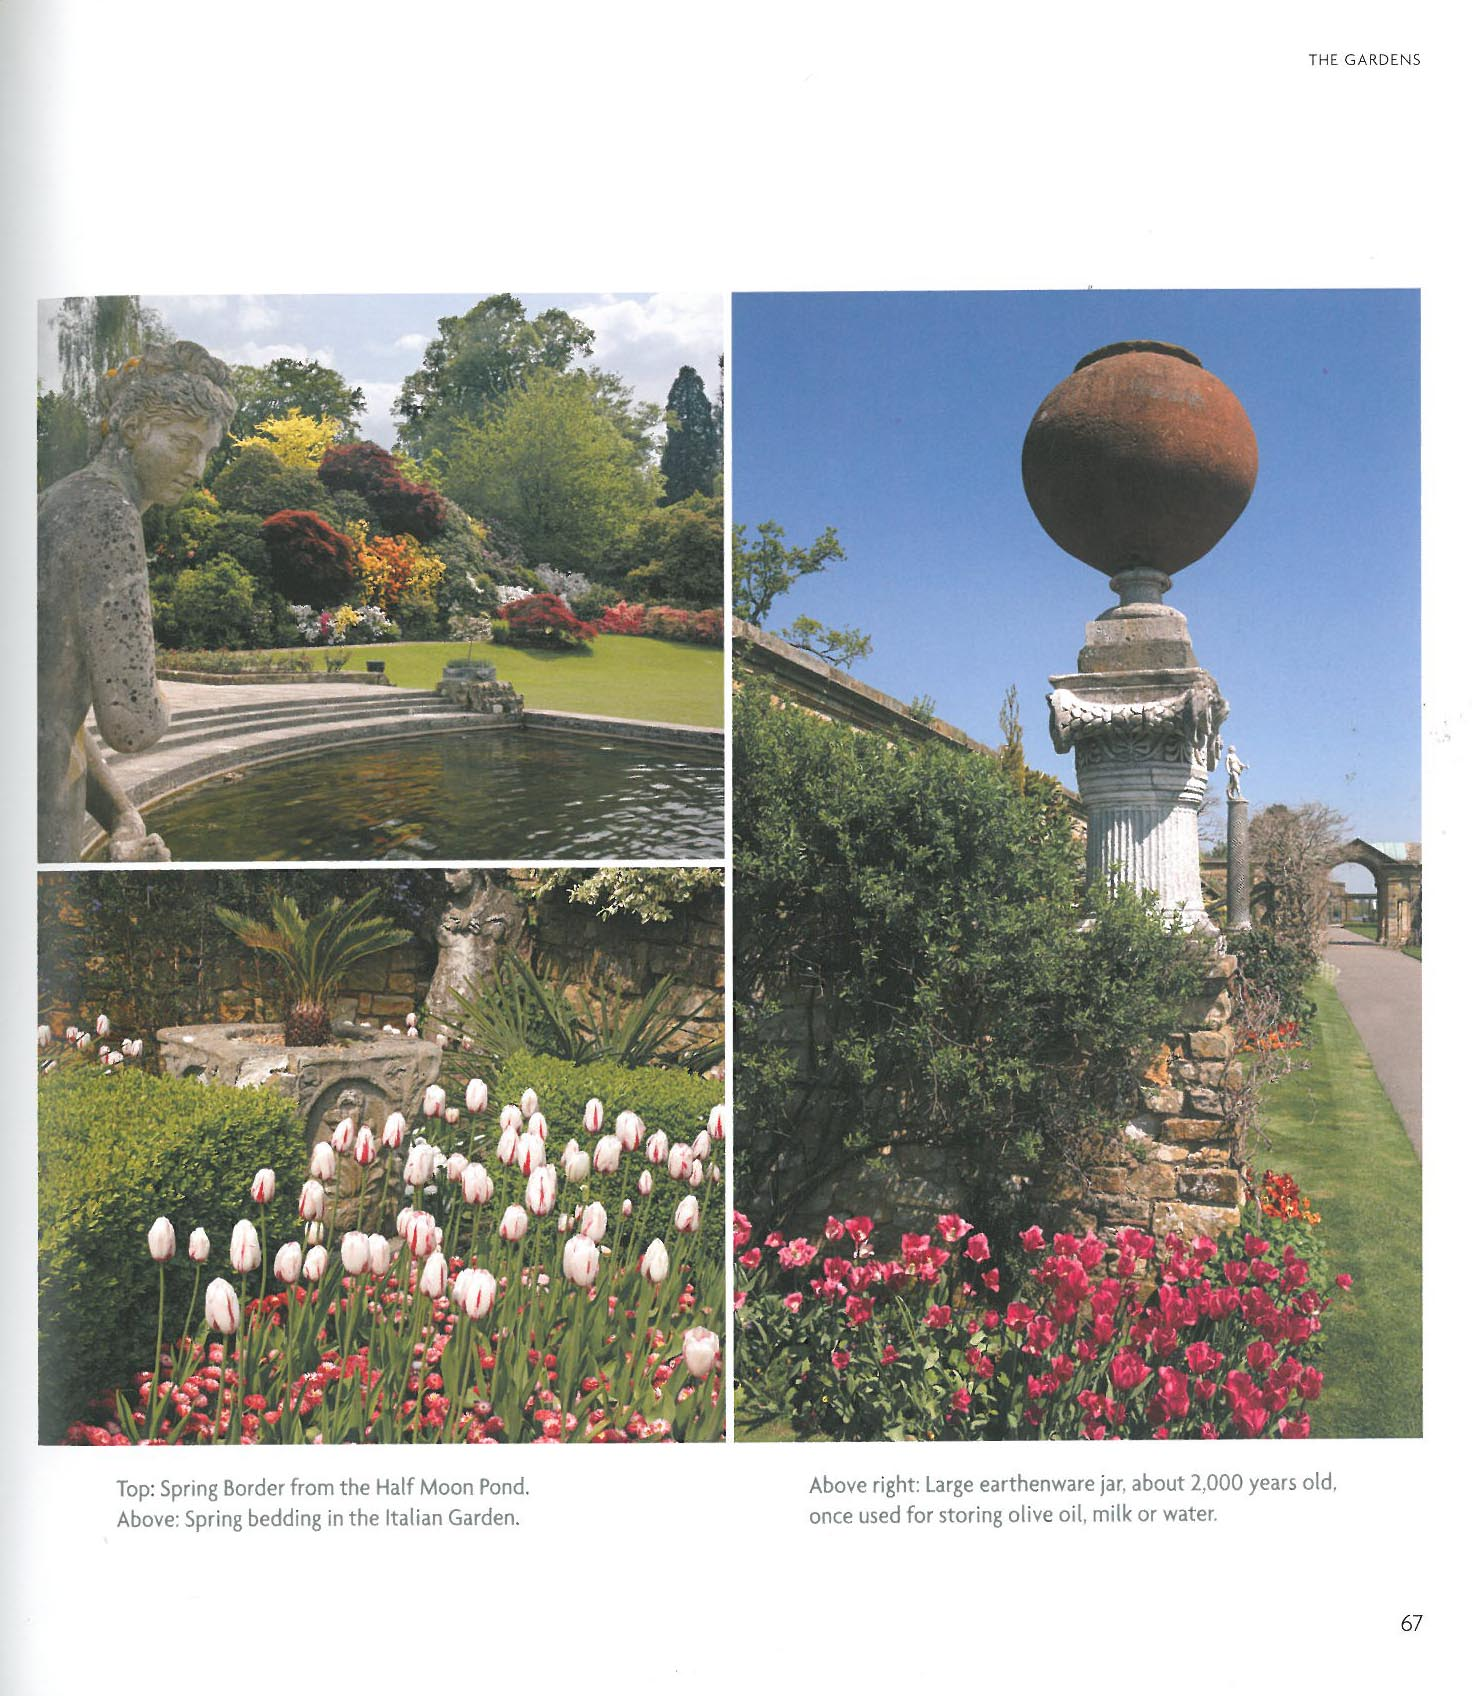 What the Gardens look like, on sunnier days. Image courtesy of Hever Castle.